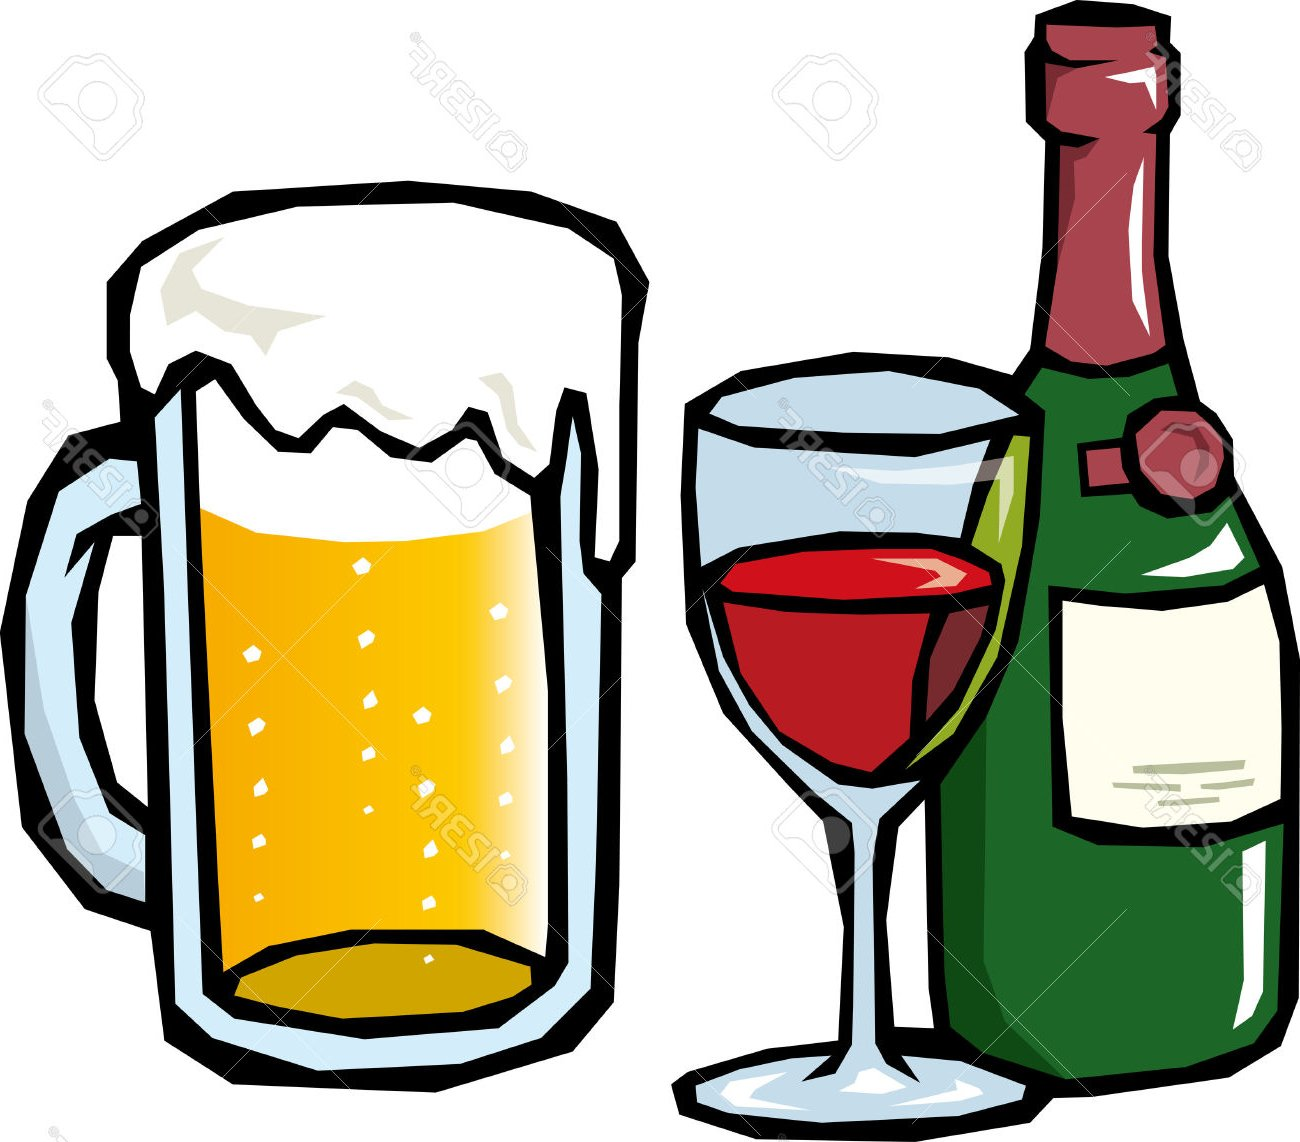 Alcohol clipart beer, Alcohol beer Transparent FREE for download on WebStockReview 2019